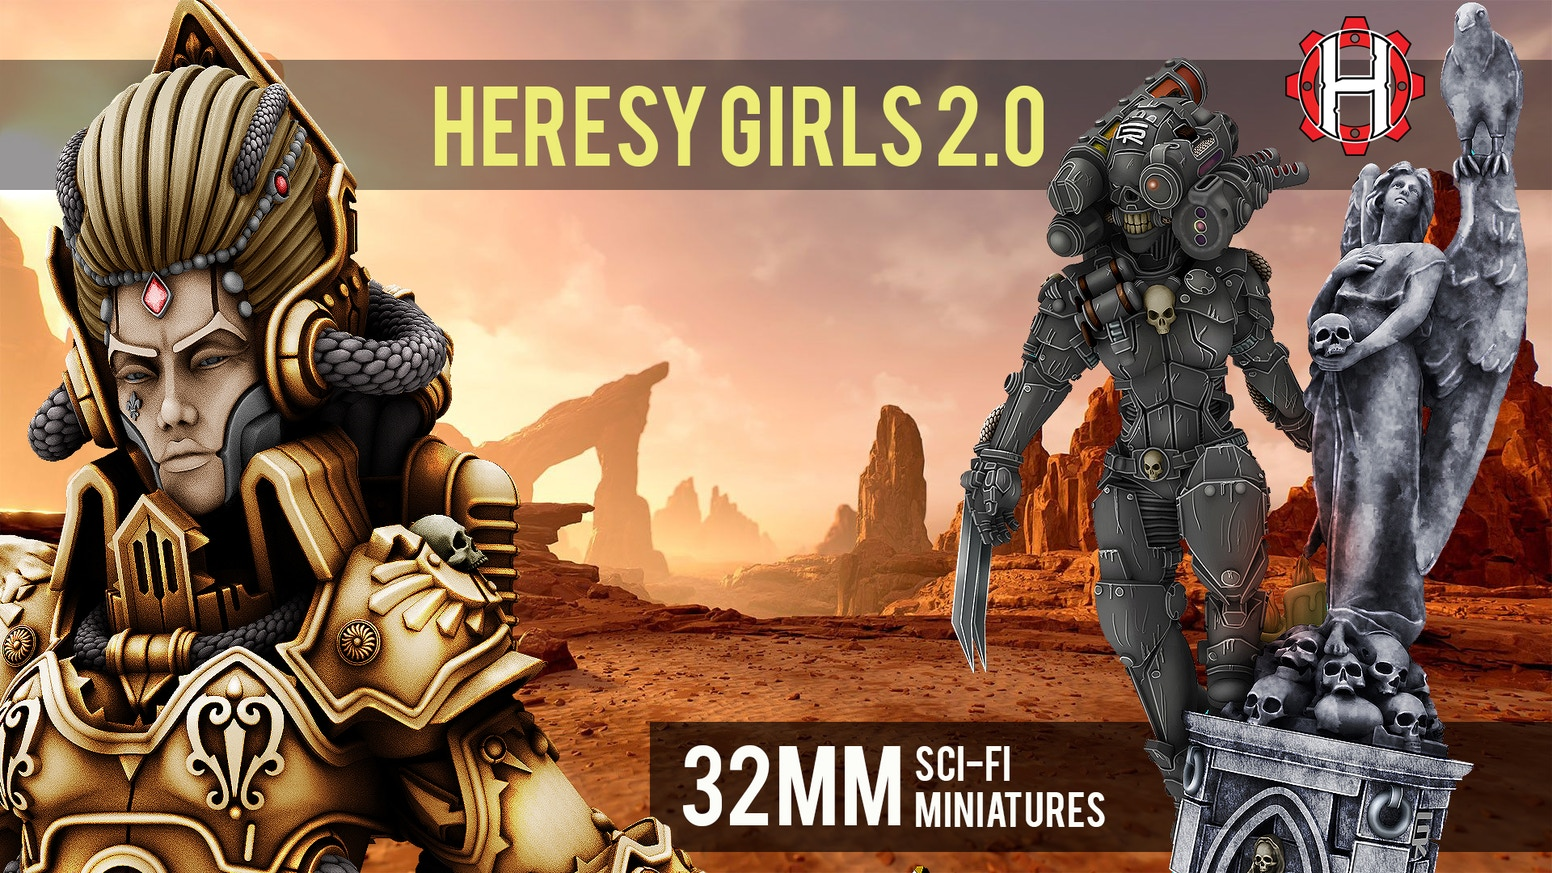 Heresy Girls 2.0 - If you missed the Kickstarter you can still join using the Pre_Order button below.